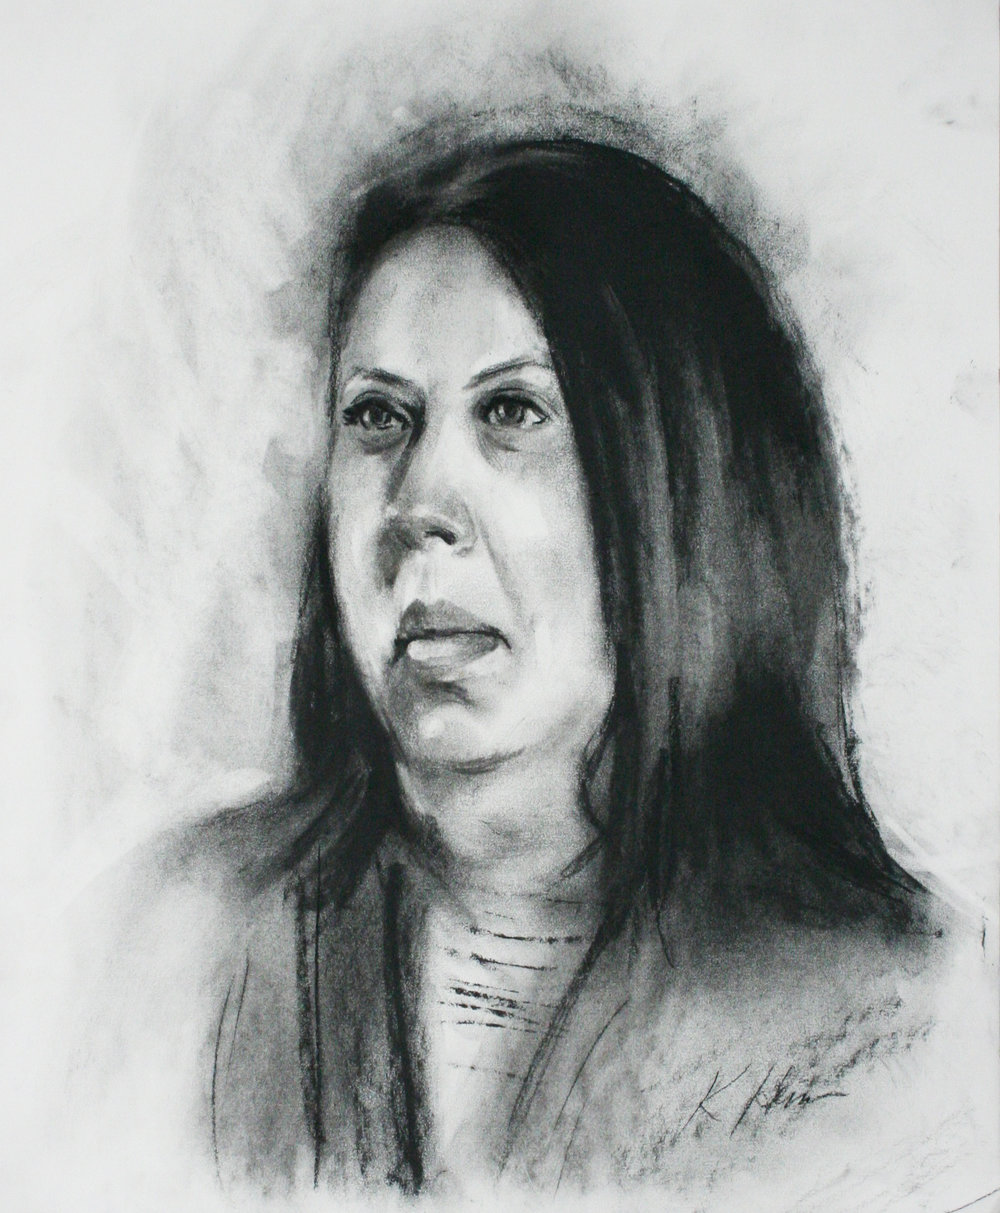 Kathryn Heim did this hour charcoal drawing.